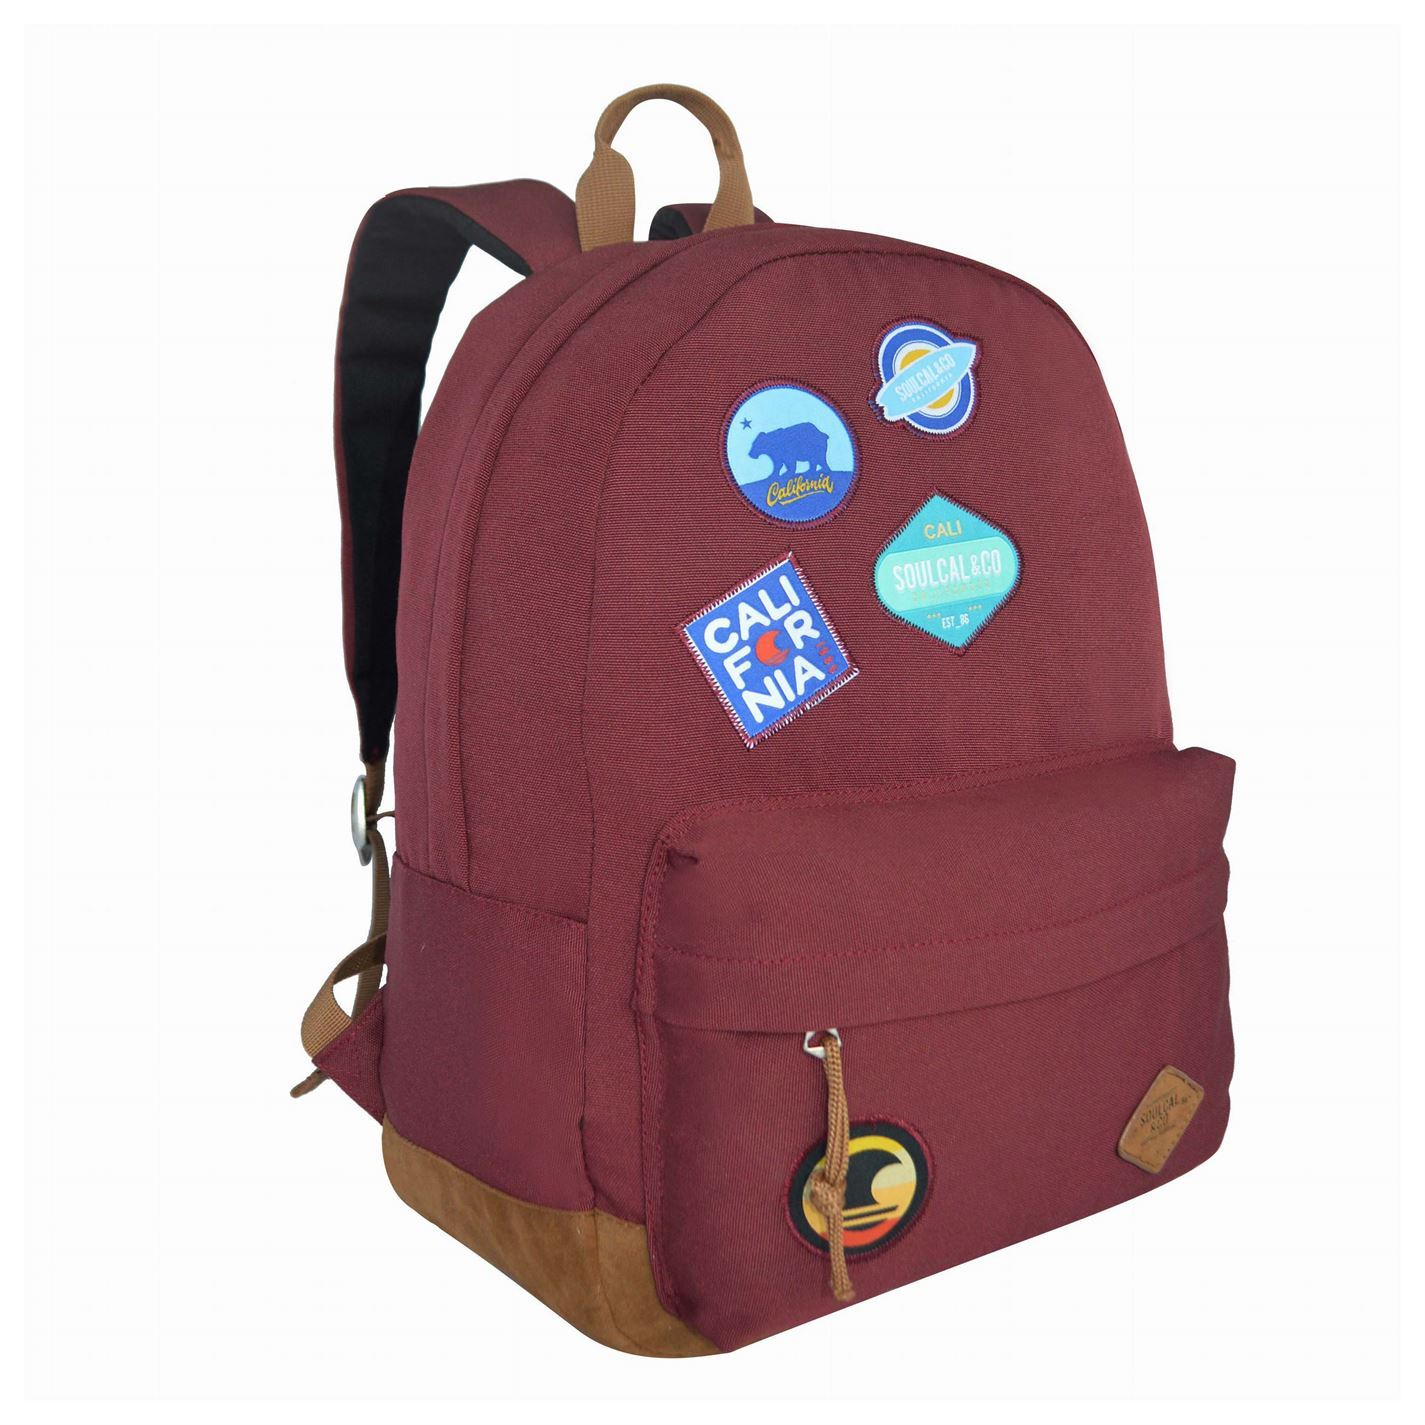 Burgundy pink backpack fenix toulouse handball jpg 1425x1425 Burgundy pink  backpack bed429403fa99